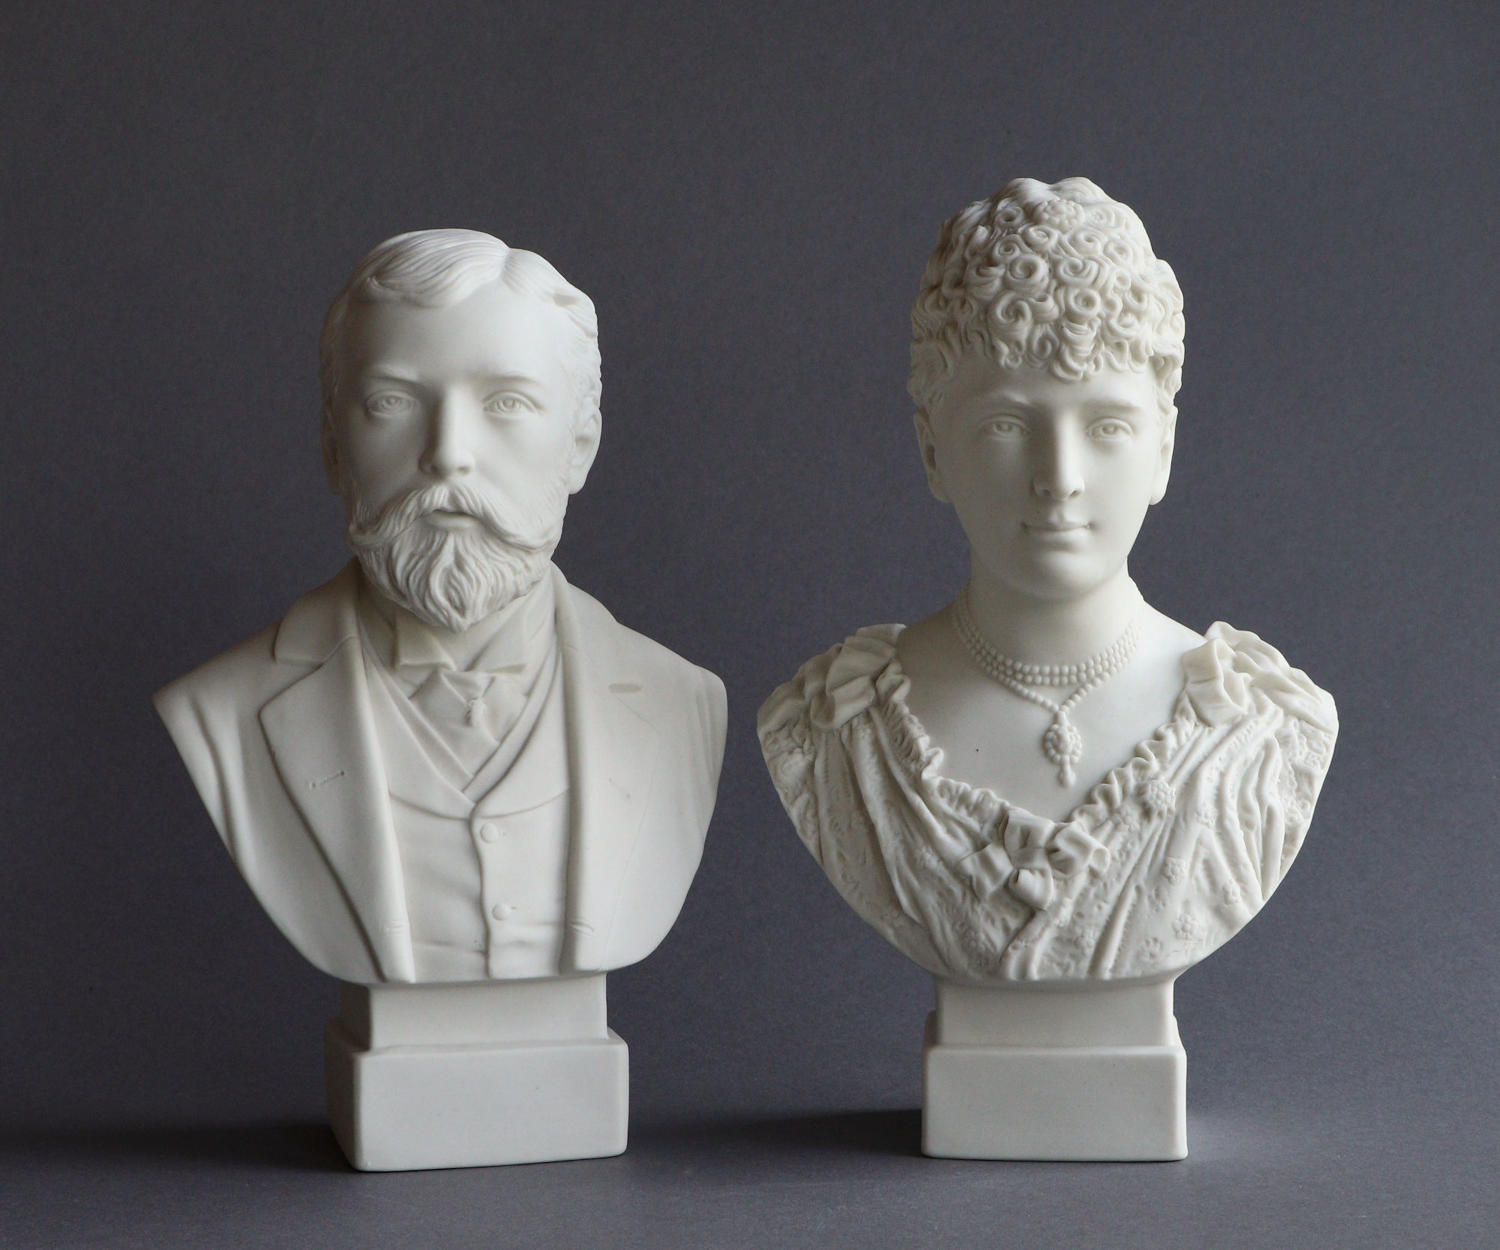 A pair of small R&L busts of the Duke of York and Princess May